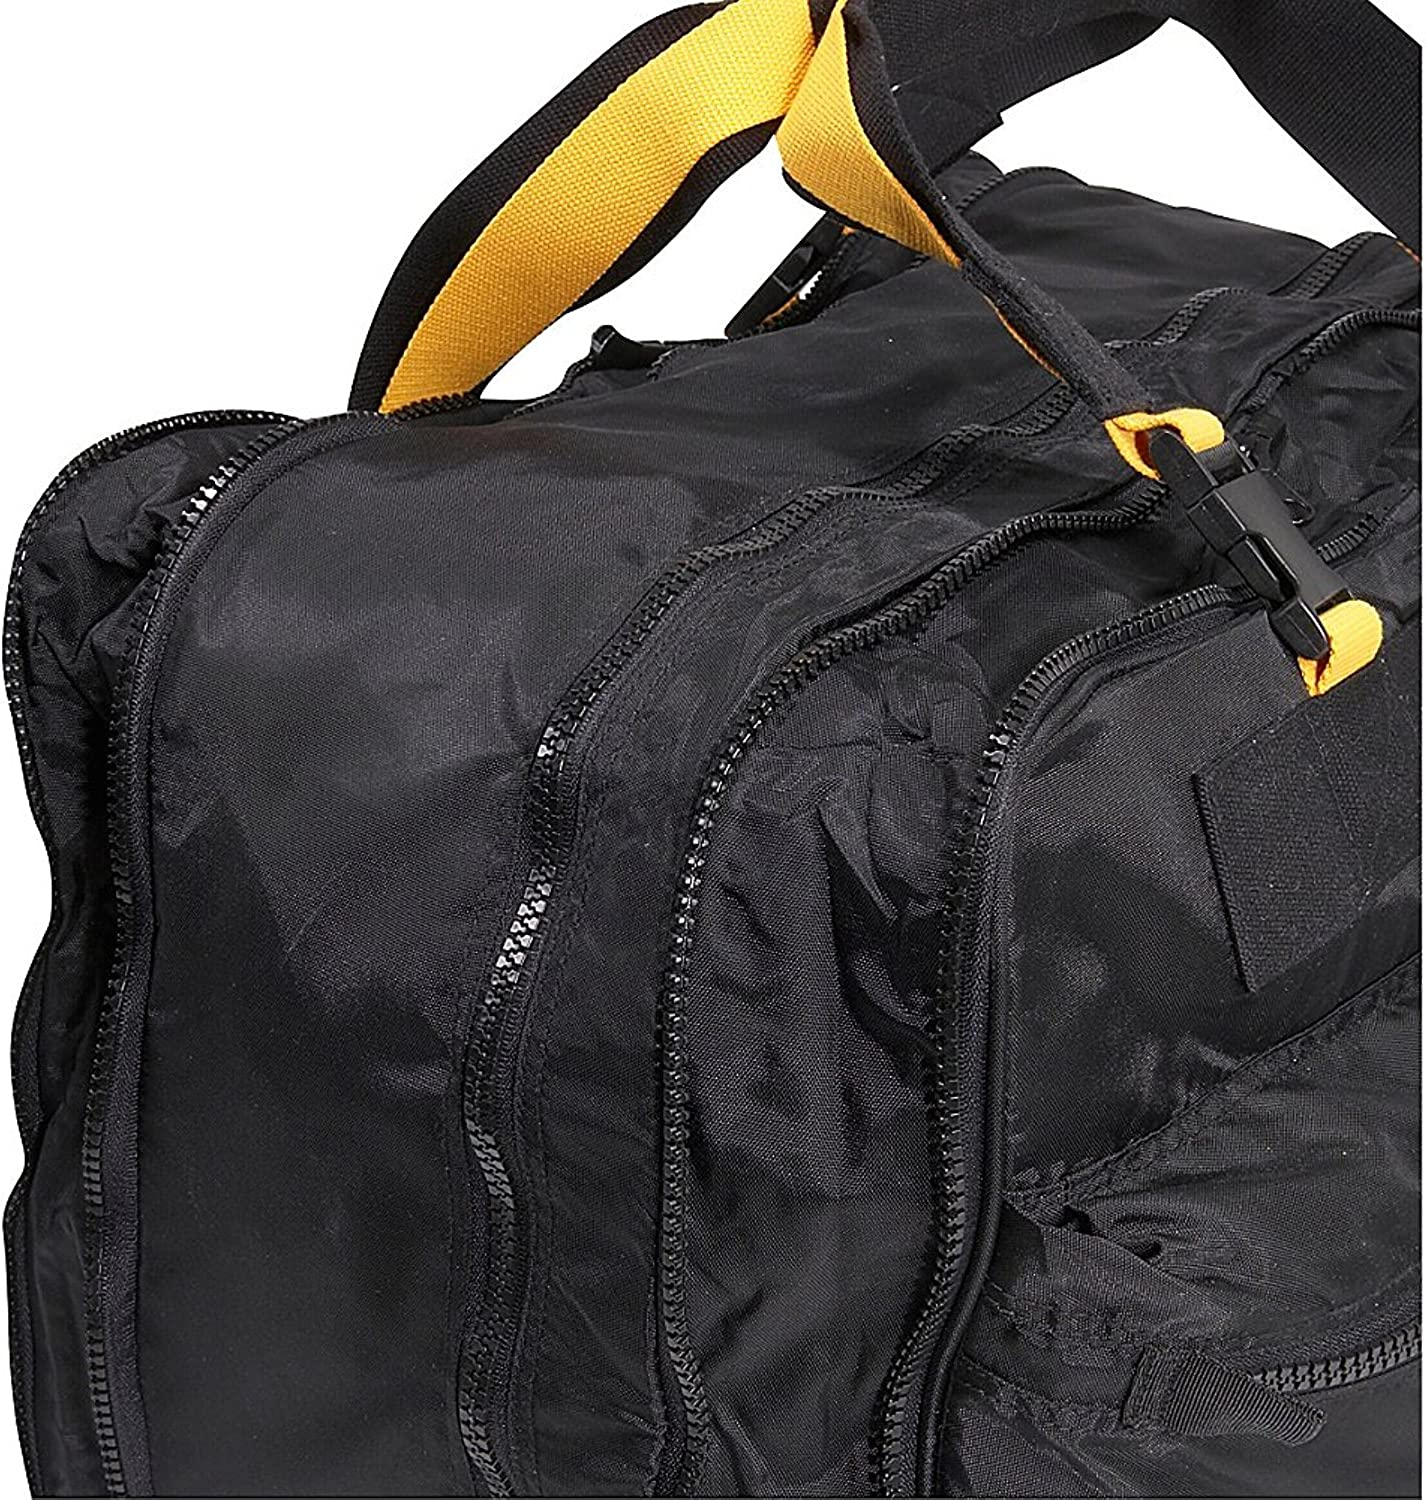 A.SAKS On The Go 21 inch Expandable Carry-On